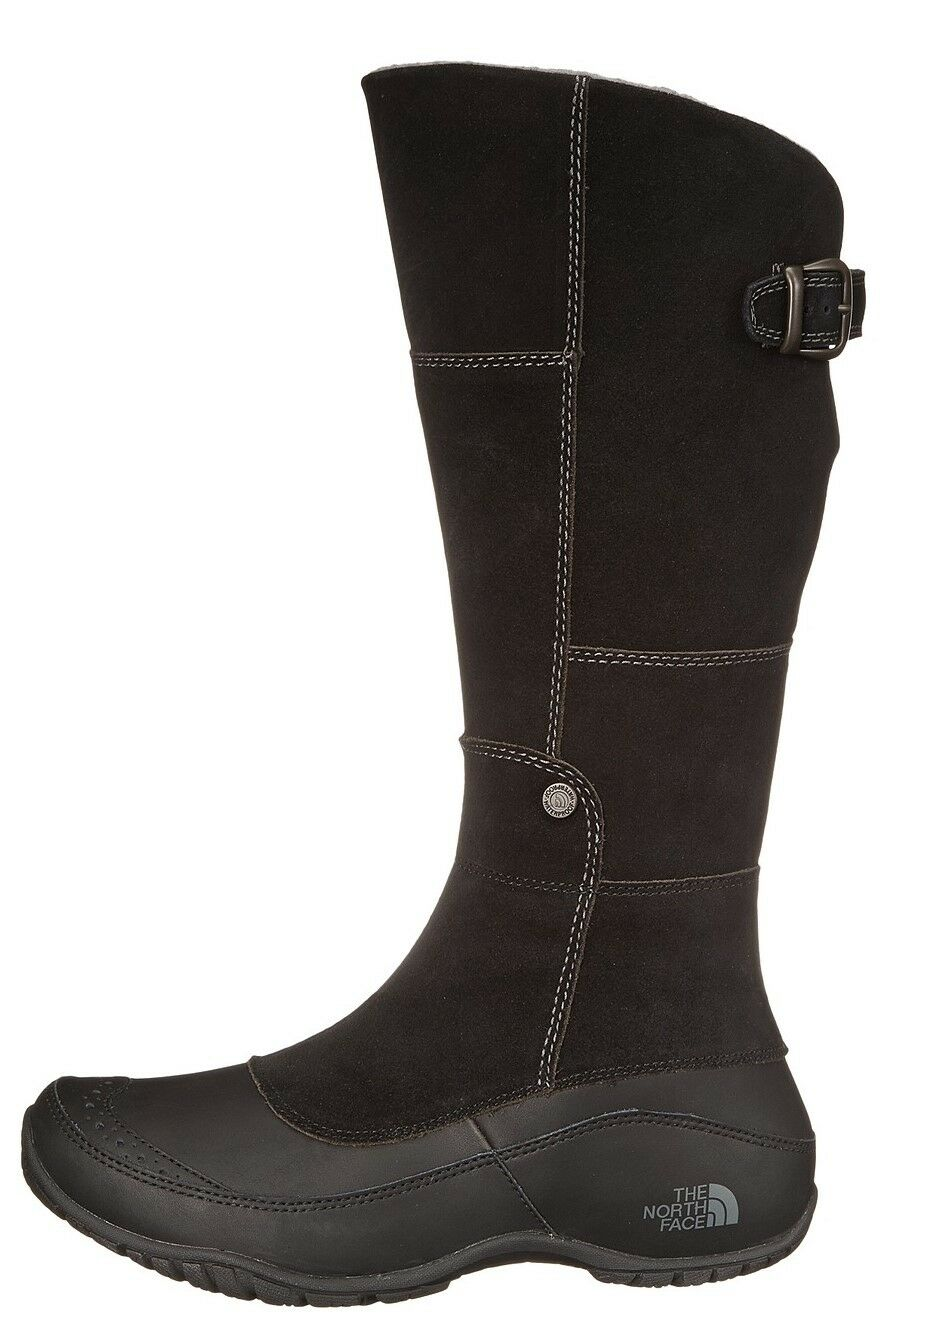 NEW  THE NORTH FACE Anna Purna Tall - Women's boots size US 6.5 EU 37.5  SAVE